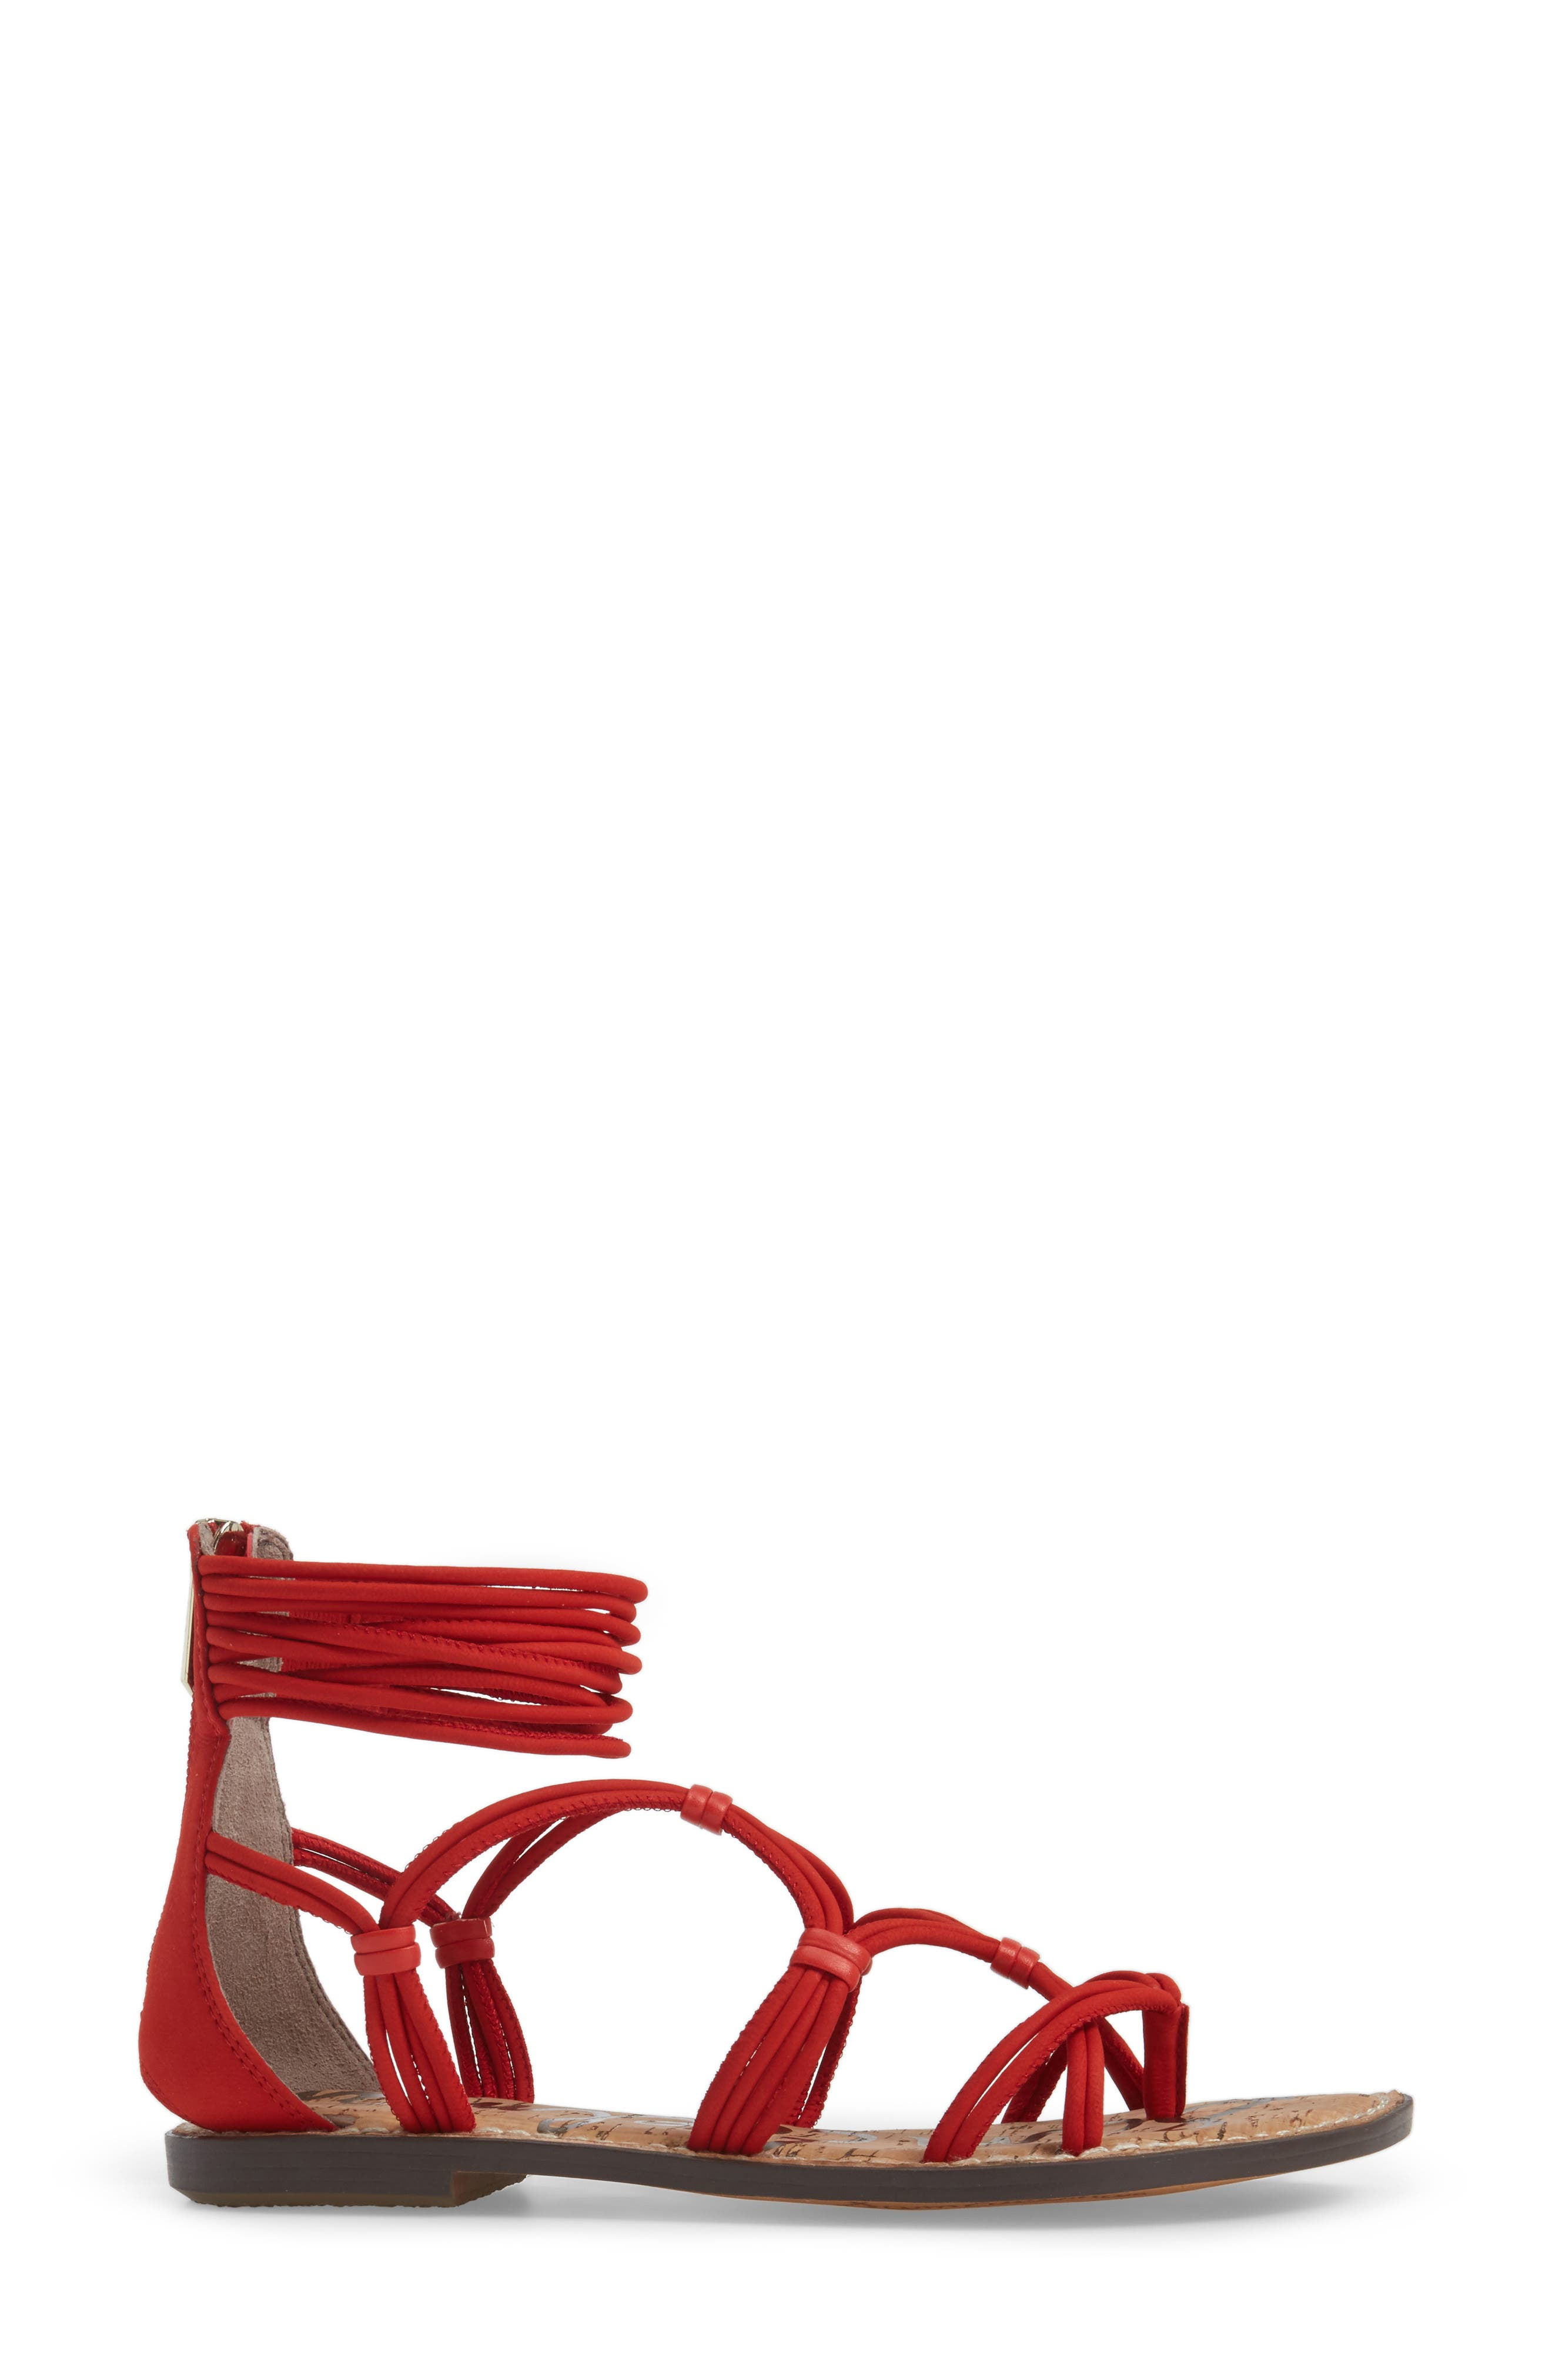 Alternate Image 3  - Sam Edelman Gianni Sandal (Women)